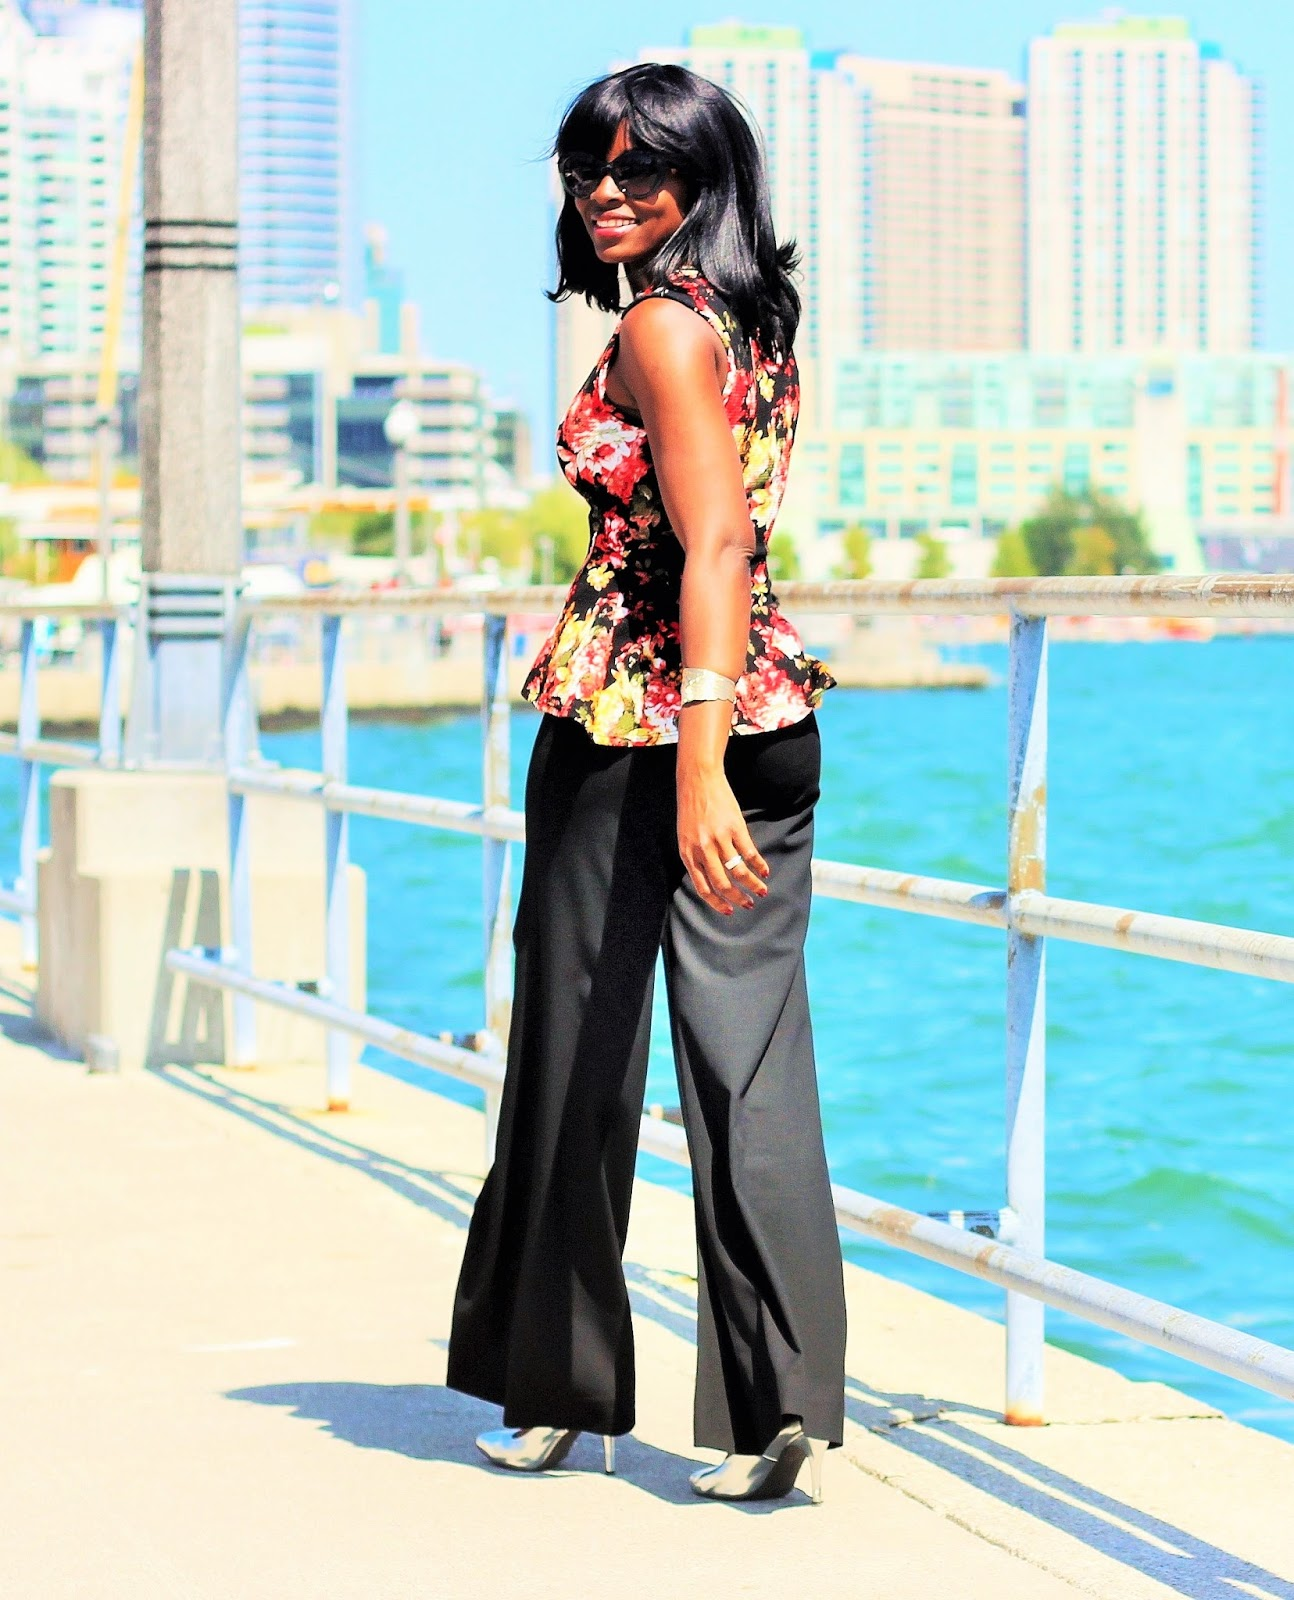 Floral Print Peplum Top Styled With A Wide Leg Pant